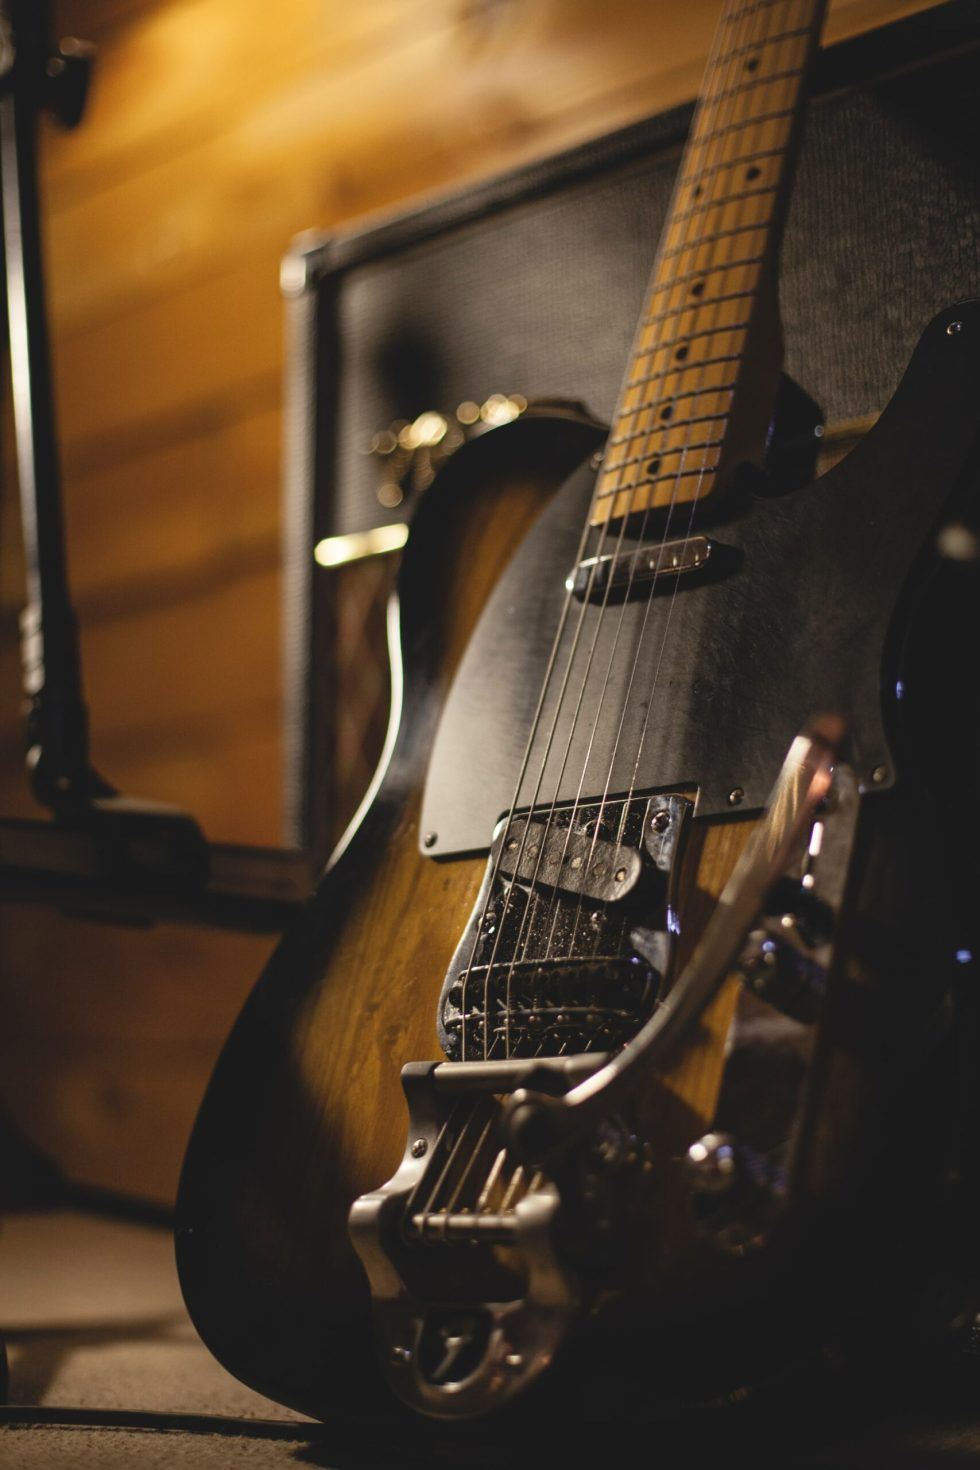 Sell your gear at Guitar Experience